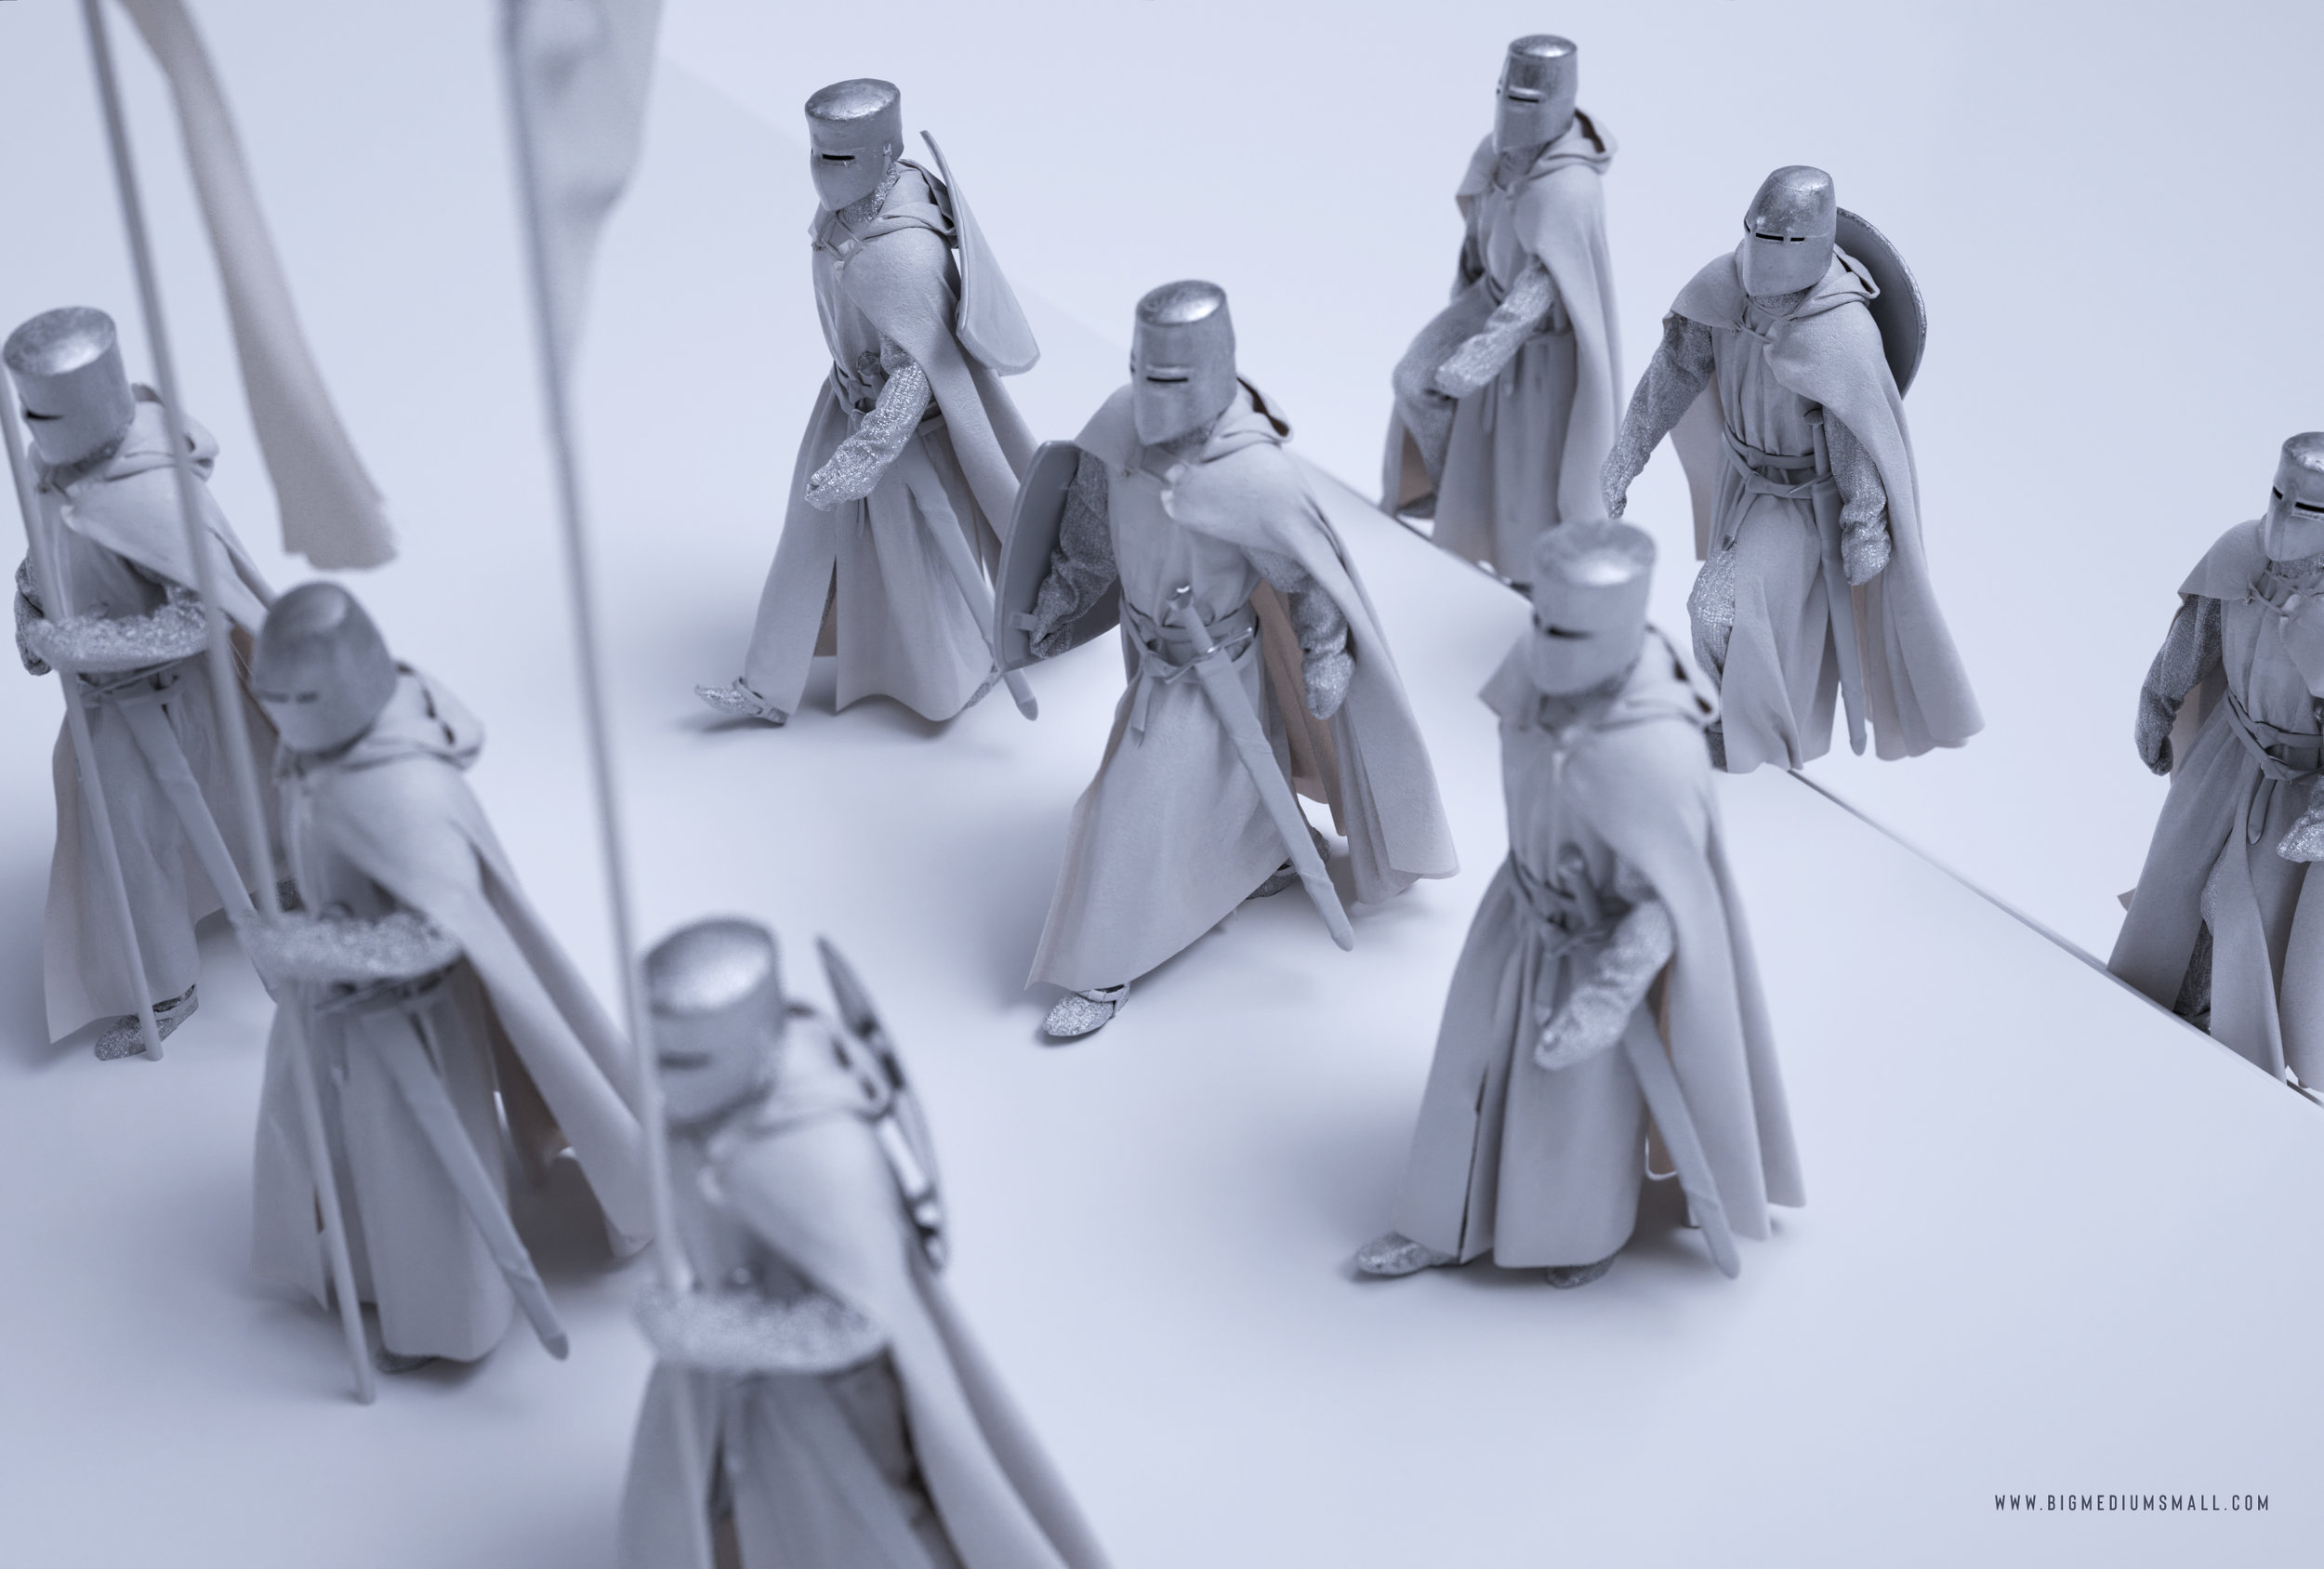 Knights_miniature_renders2.jpg